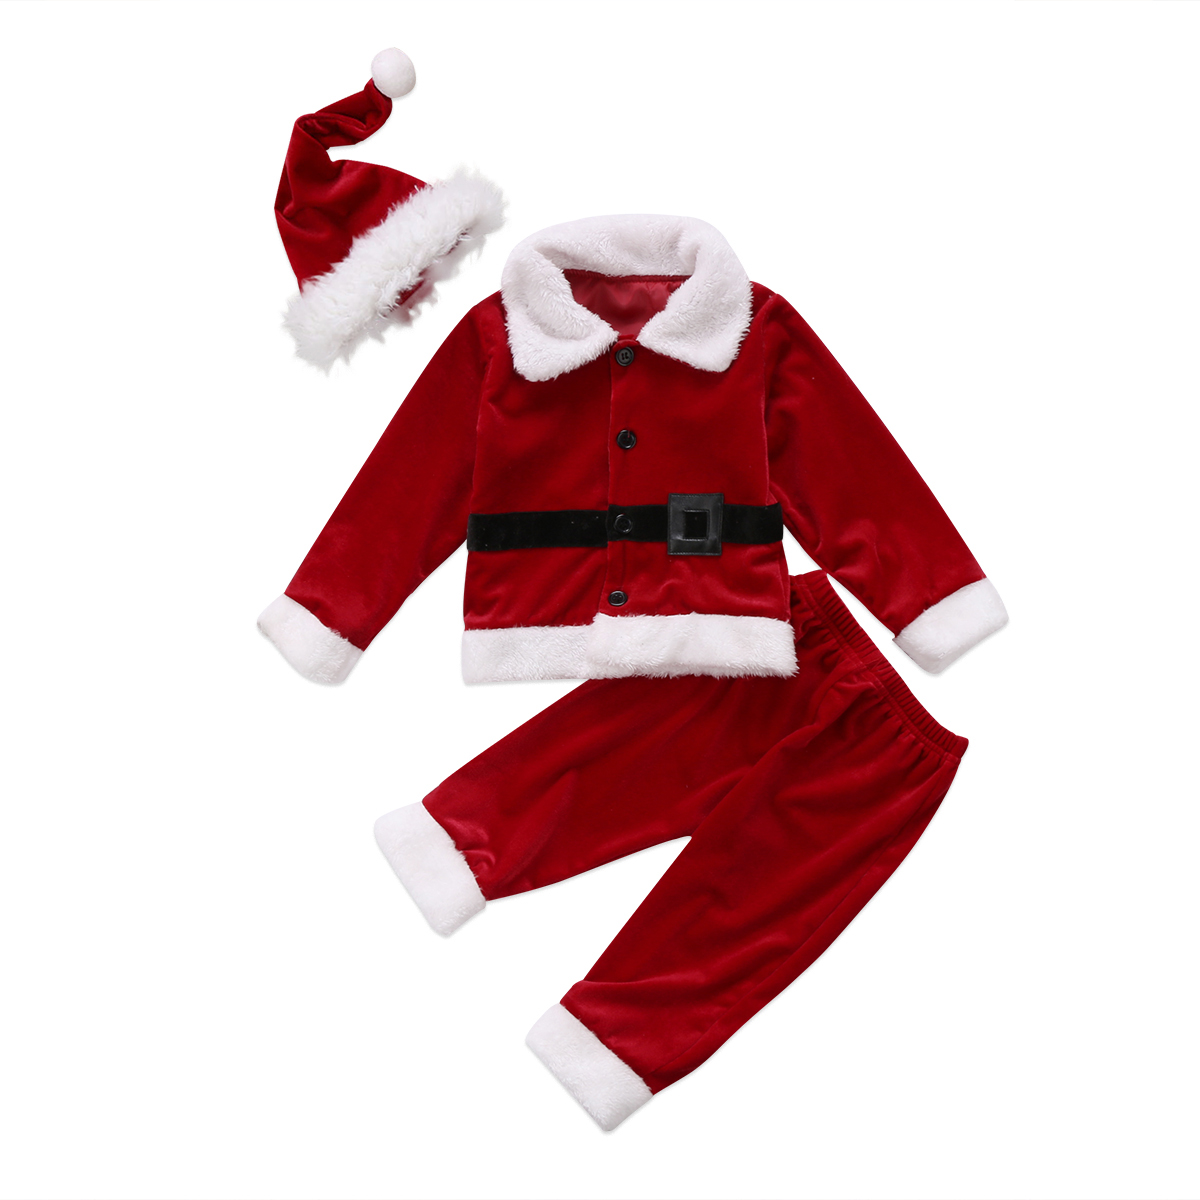 2017 New year kid baby boys girls Christmas Costume Santa Claus Suit Christmas Clothes Tops+Pant 2pcs Boys girl Kids Clothes